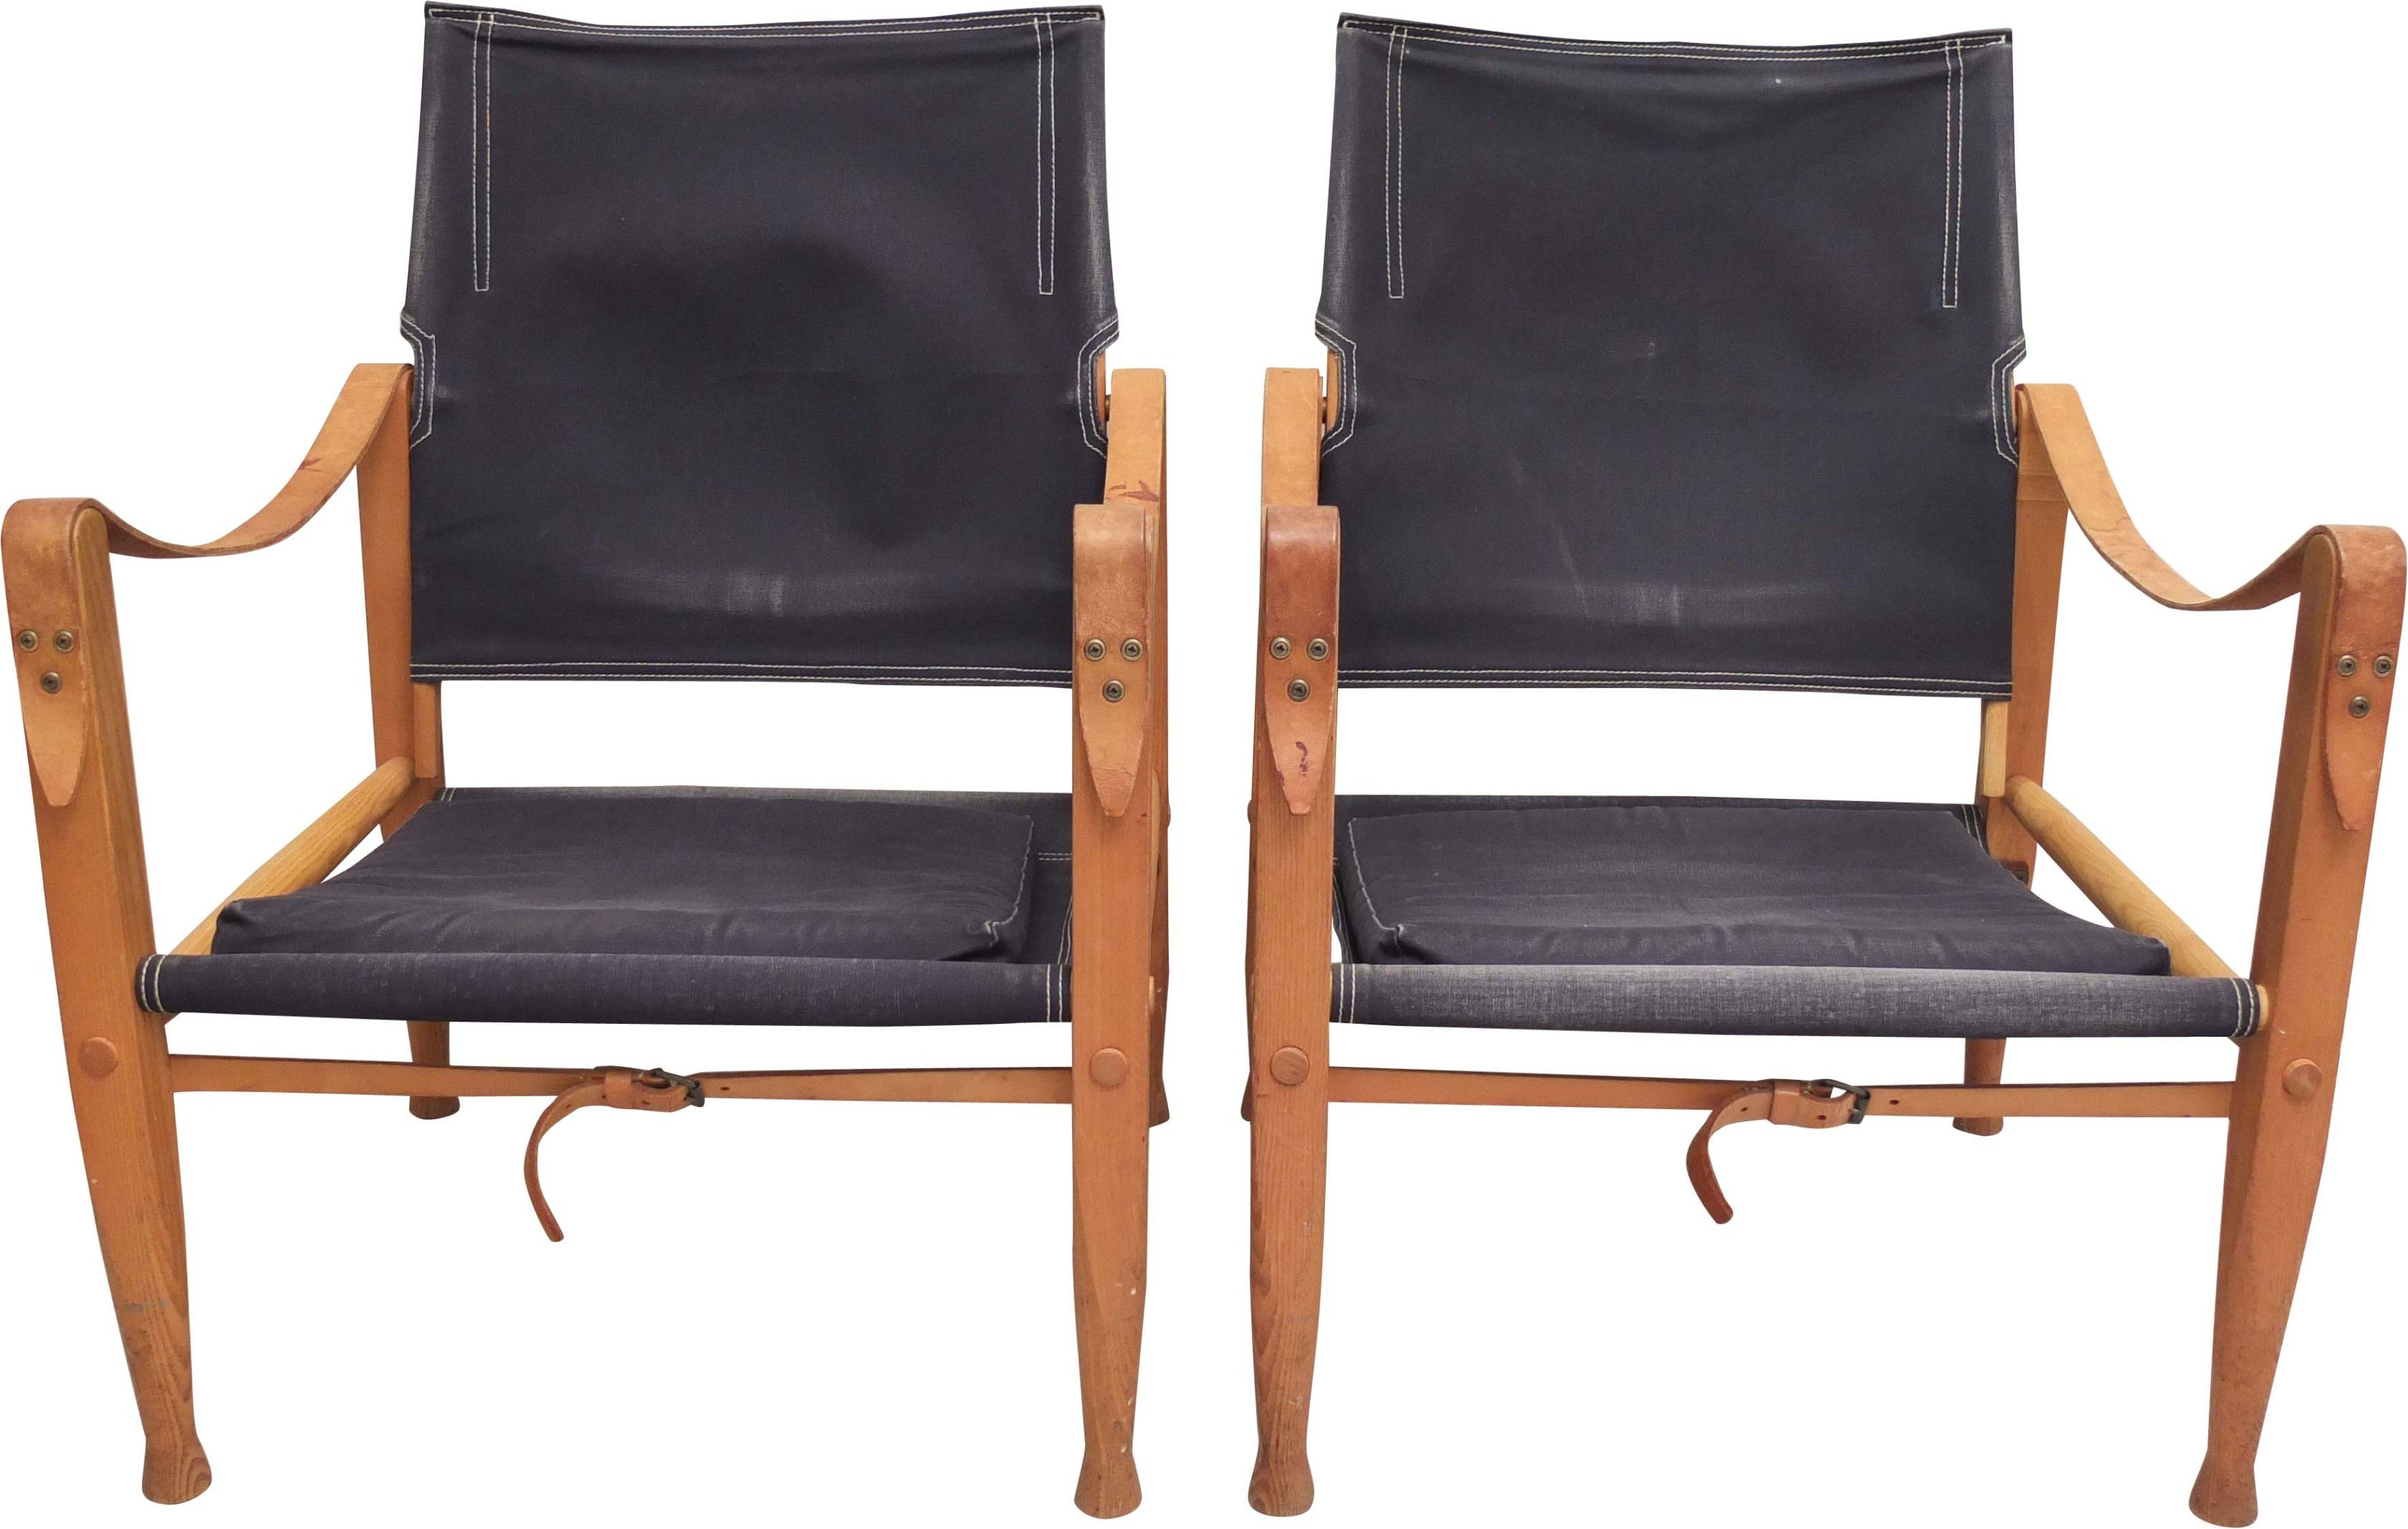 Pair of Armchairs by K. Klint for Rud Rassmusen, Denmark, 1950s